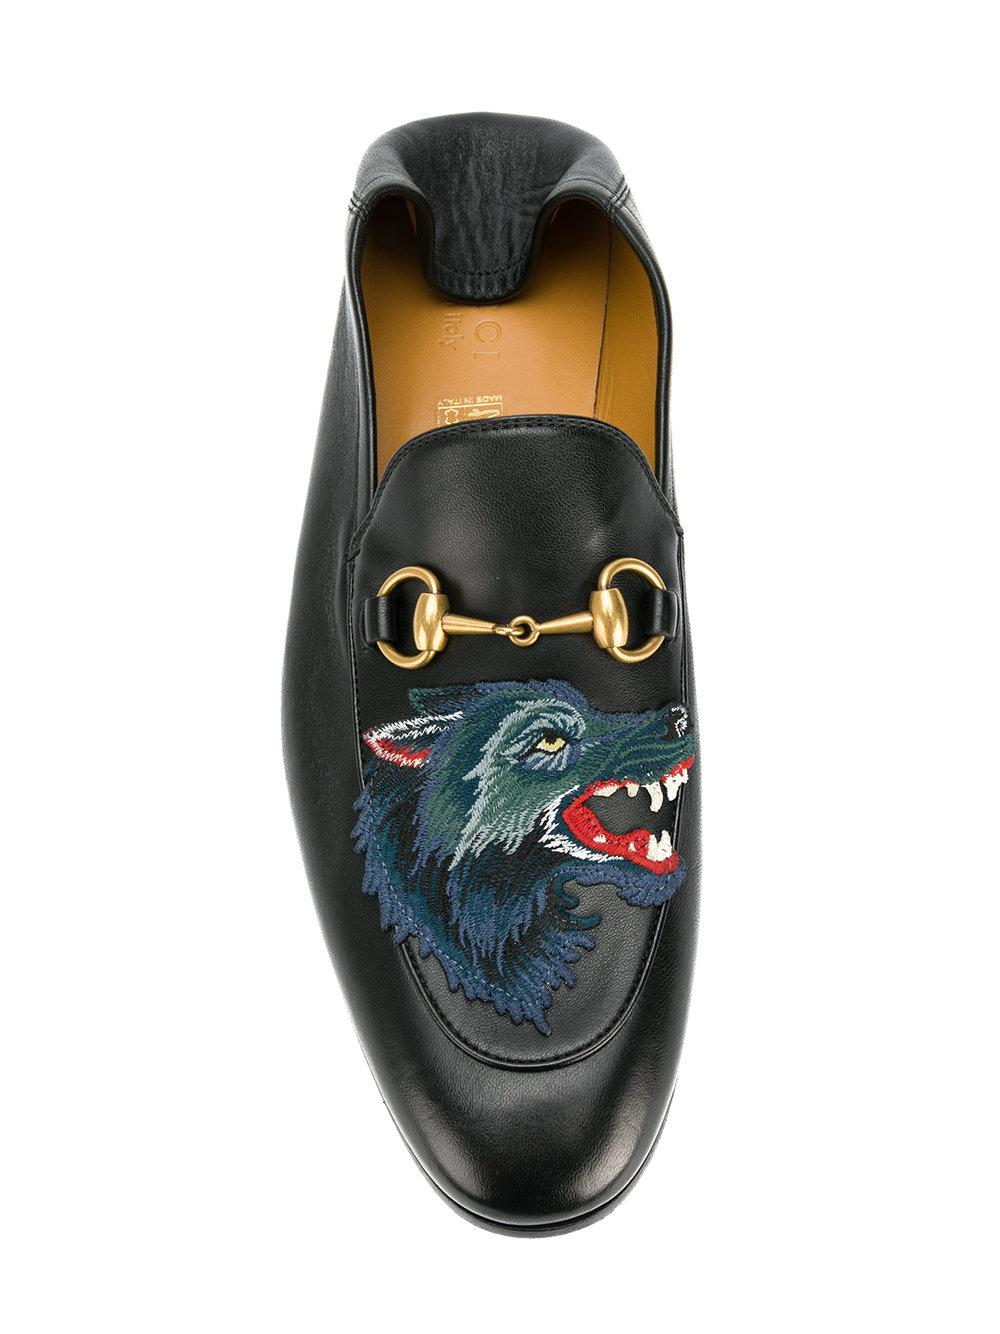 77b91428e90 Lyst - Gucci Wolf Embroidered Horsebit Loafers in Black for Men